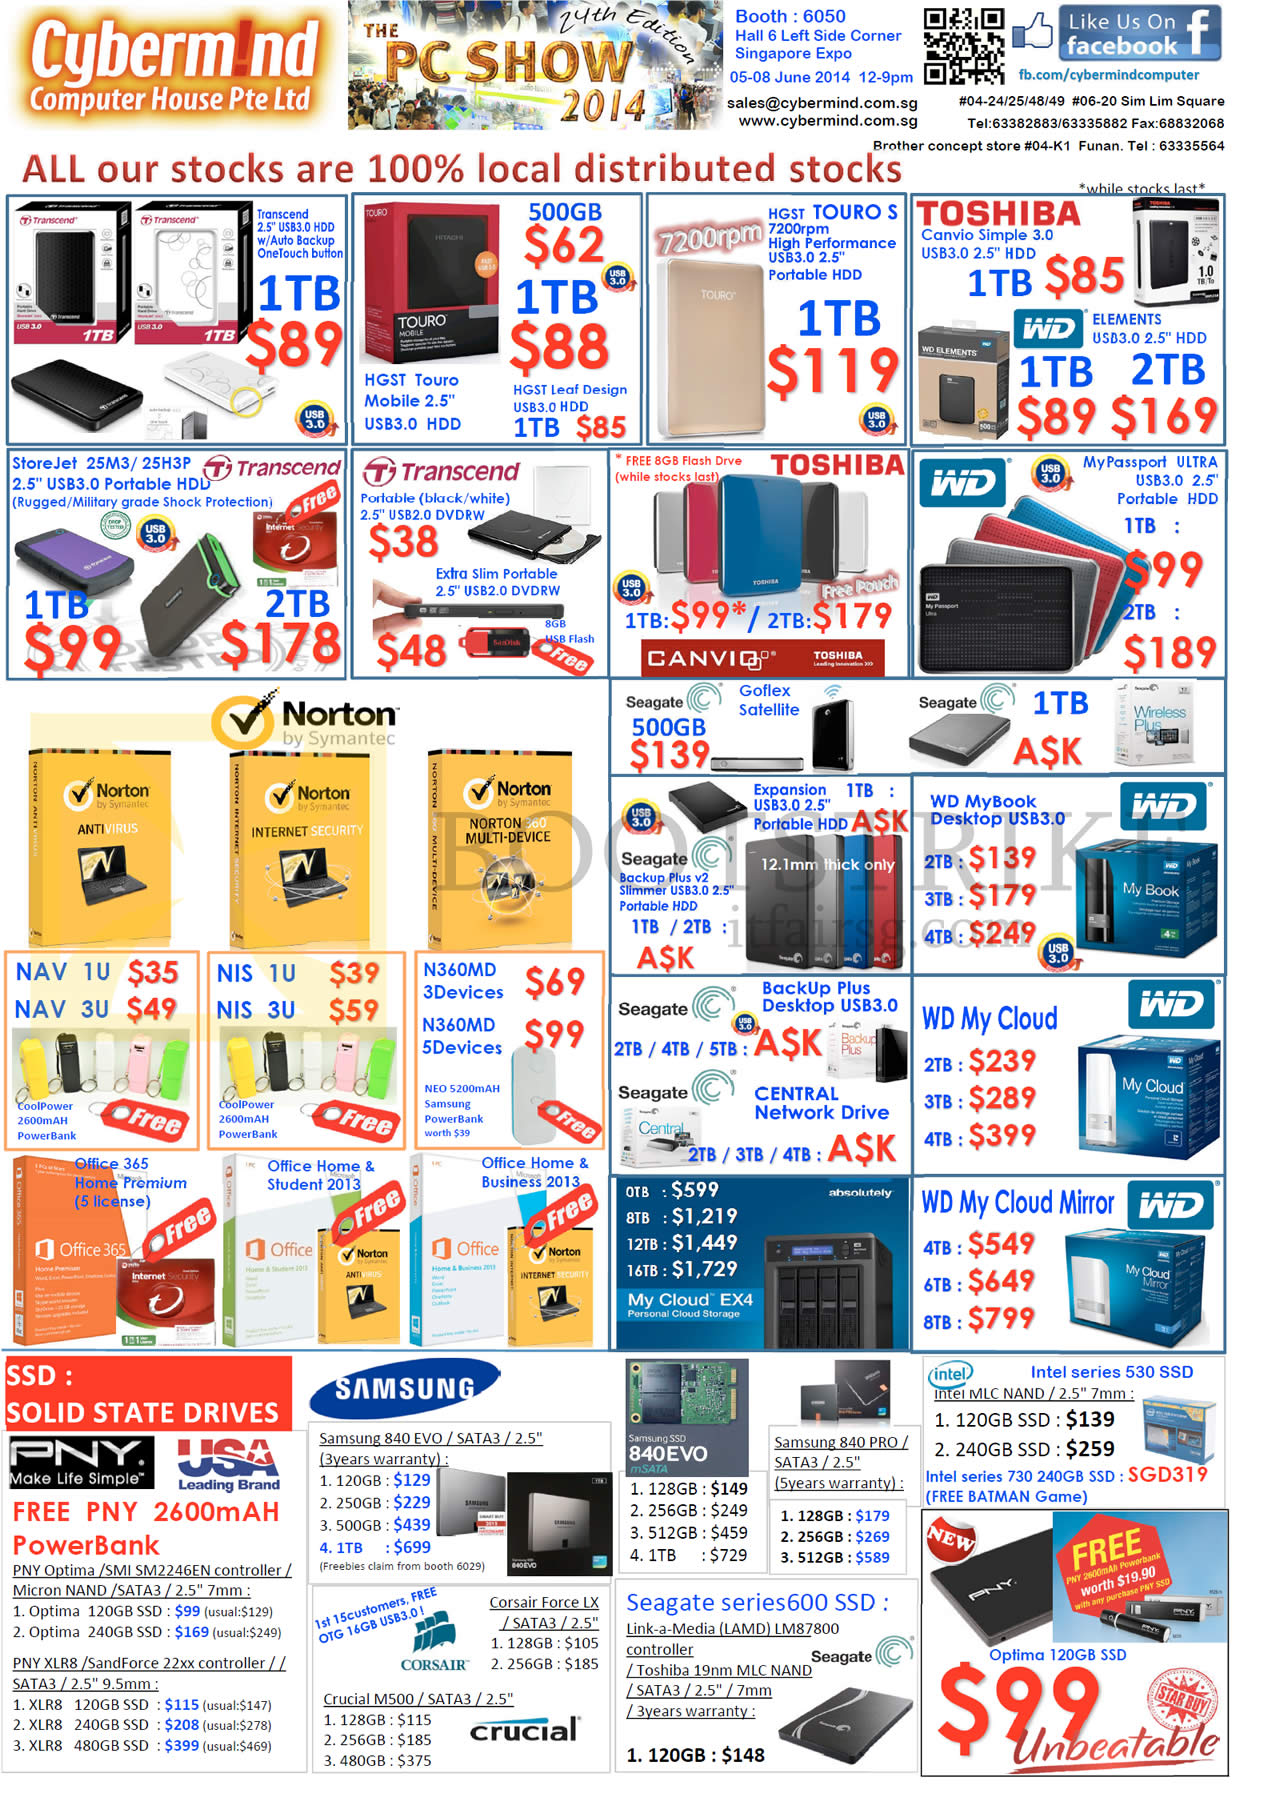 PC SHOW 2014 price list image brochure of Cybermind External Hard Disk Drives Transcend, Toshiba, Norton, Western Digital WD, Seagate, Microsoft Office, SSD, Samsung EVO, Intel